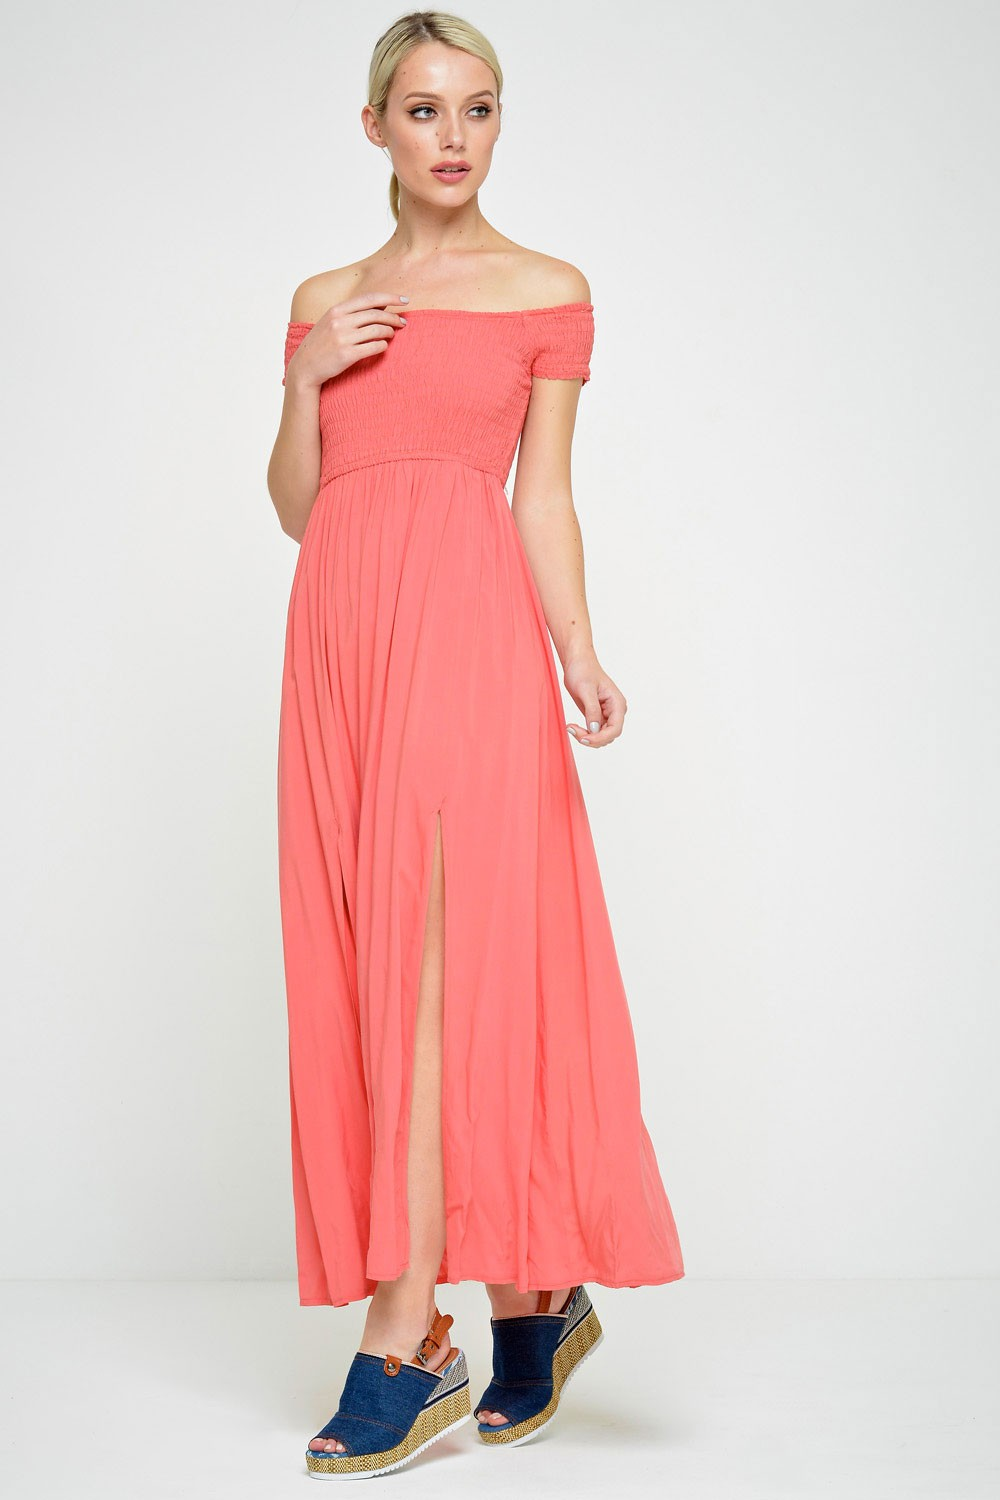 Stella Pia off Shoulder Maxi Dress in Coral | iCLOTHING